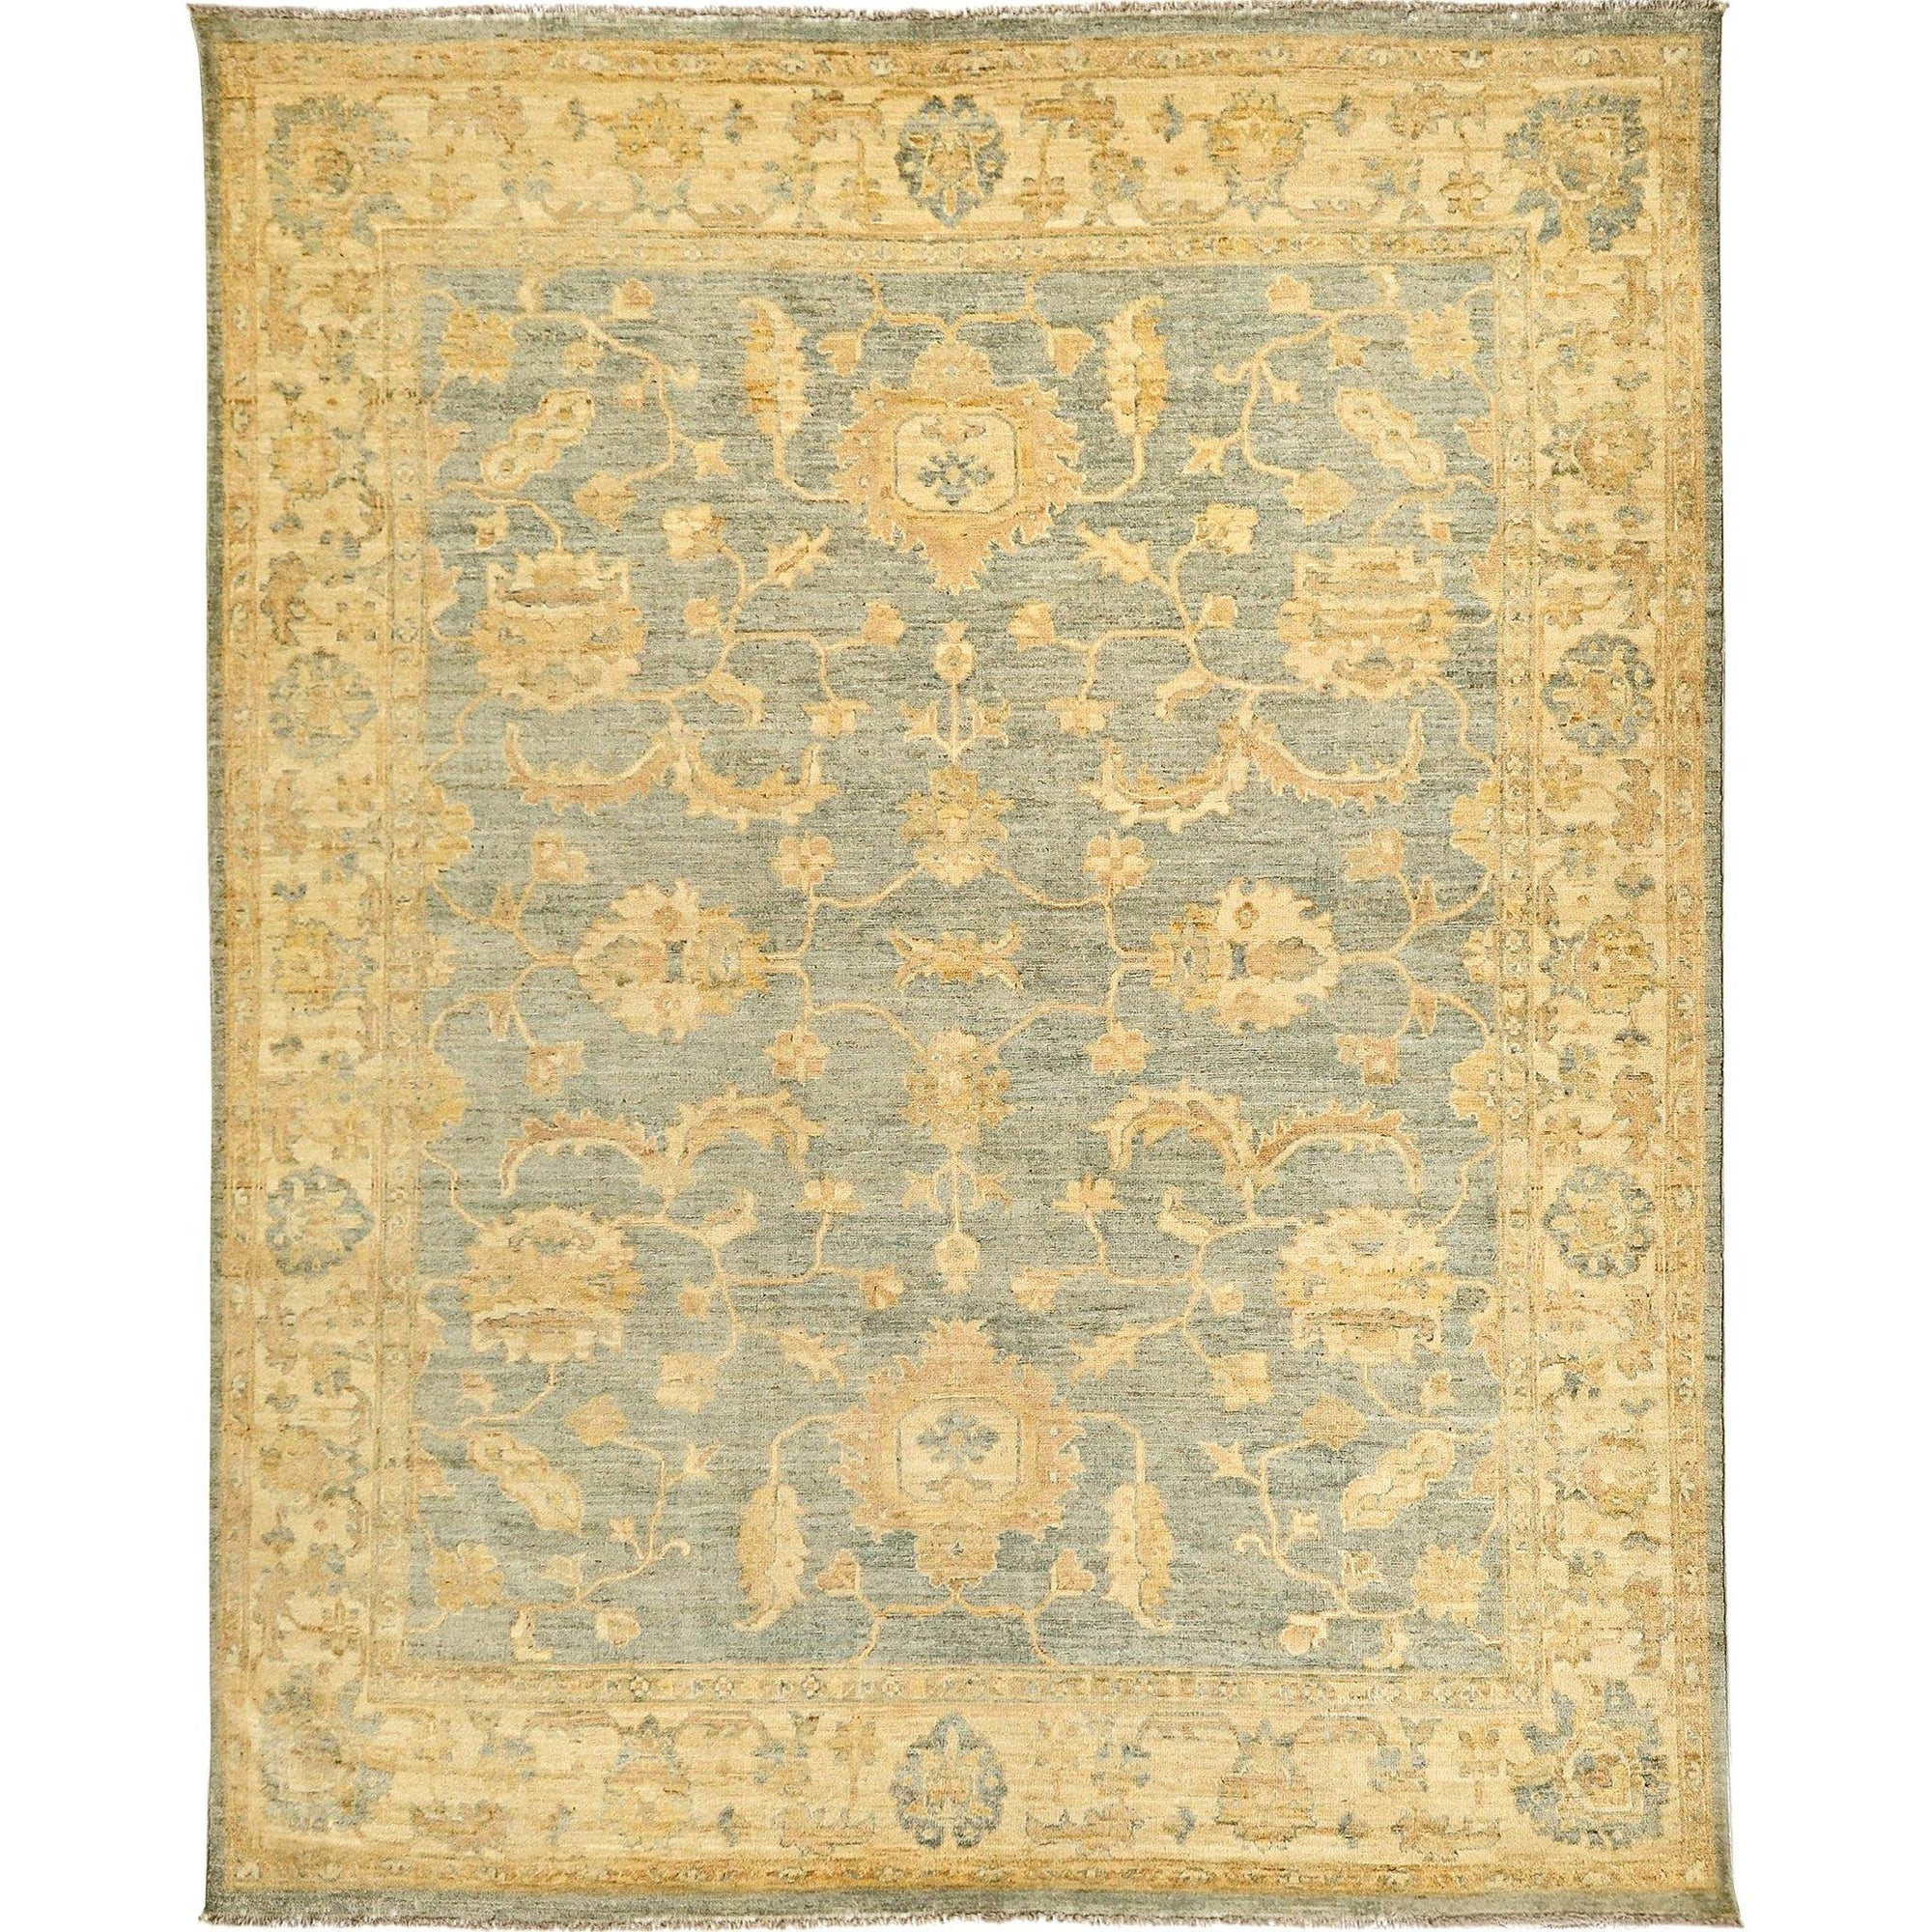 Fine Modern Hand-knotted Wool Rug 248cm x 292cm Persian-Rug | House-of-Haghi | NewMarket | Auckland | NZ | Handmade Persian Rugs | Hand Knotted Persian Rugs